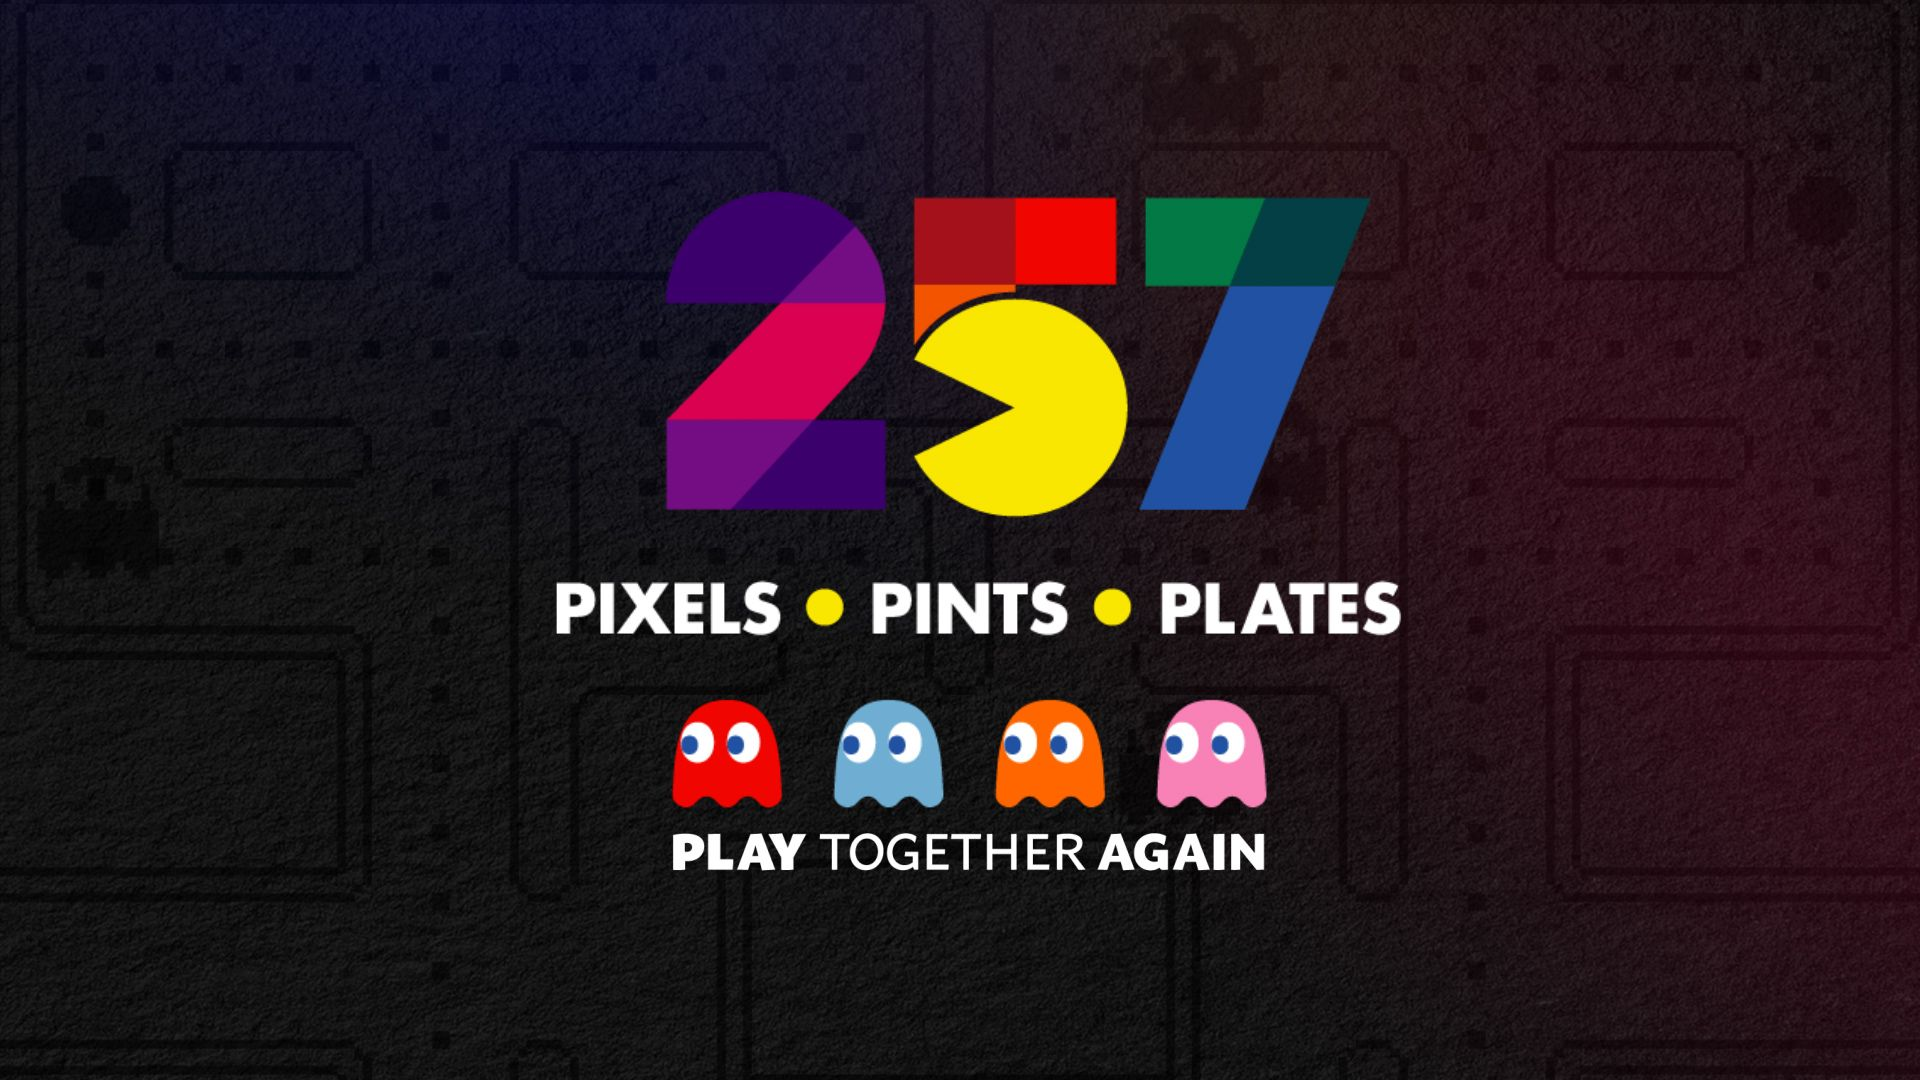 Level 257 - Play Together Again